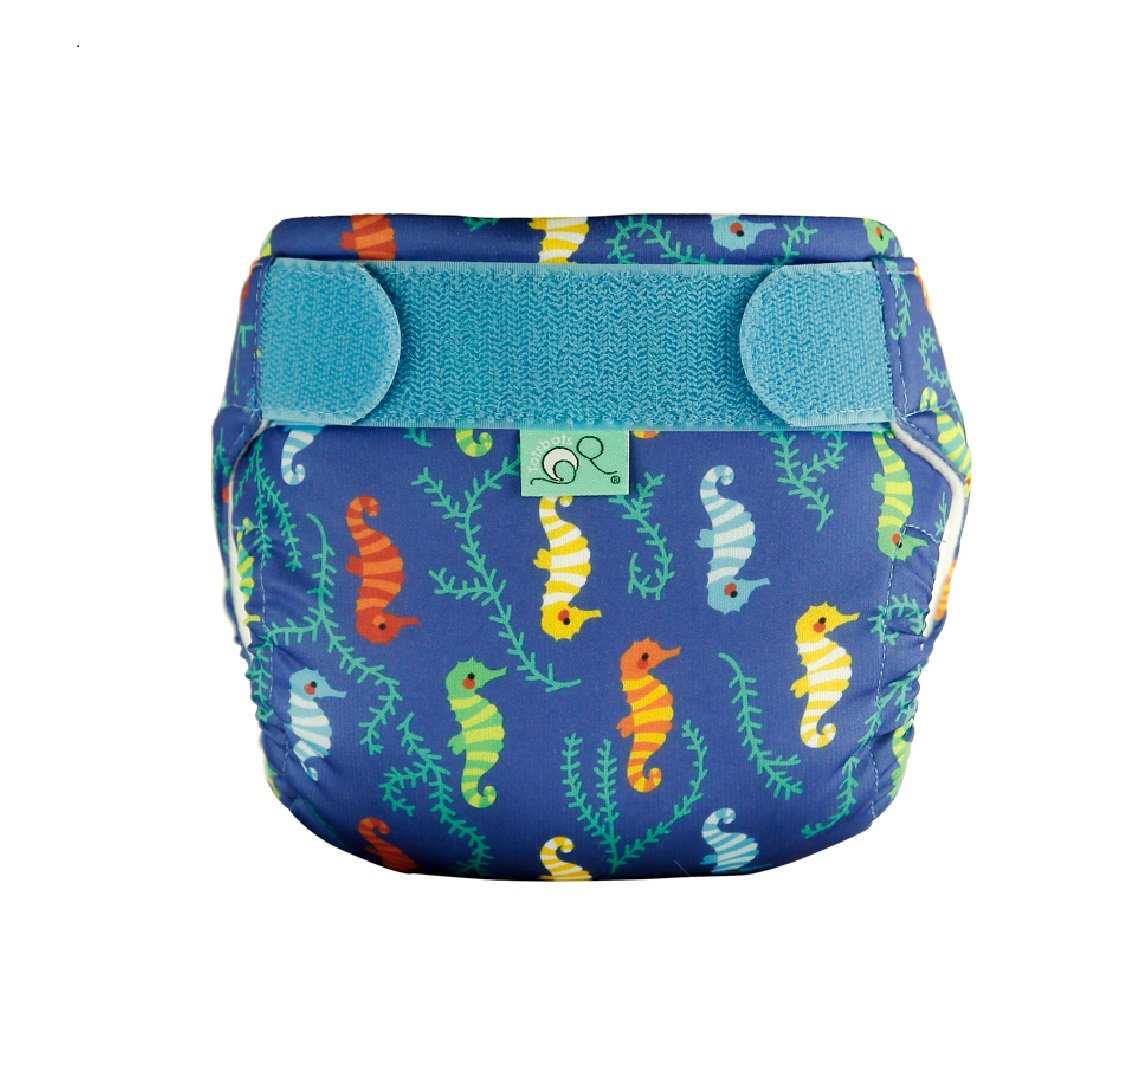 TotsBots Swims - Wee Seahorses Design Reusable Washable Swimming Nappy in size 2, 20-35 lbs Tots Bots Limited 5060510761674